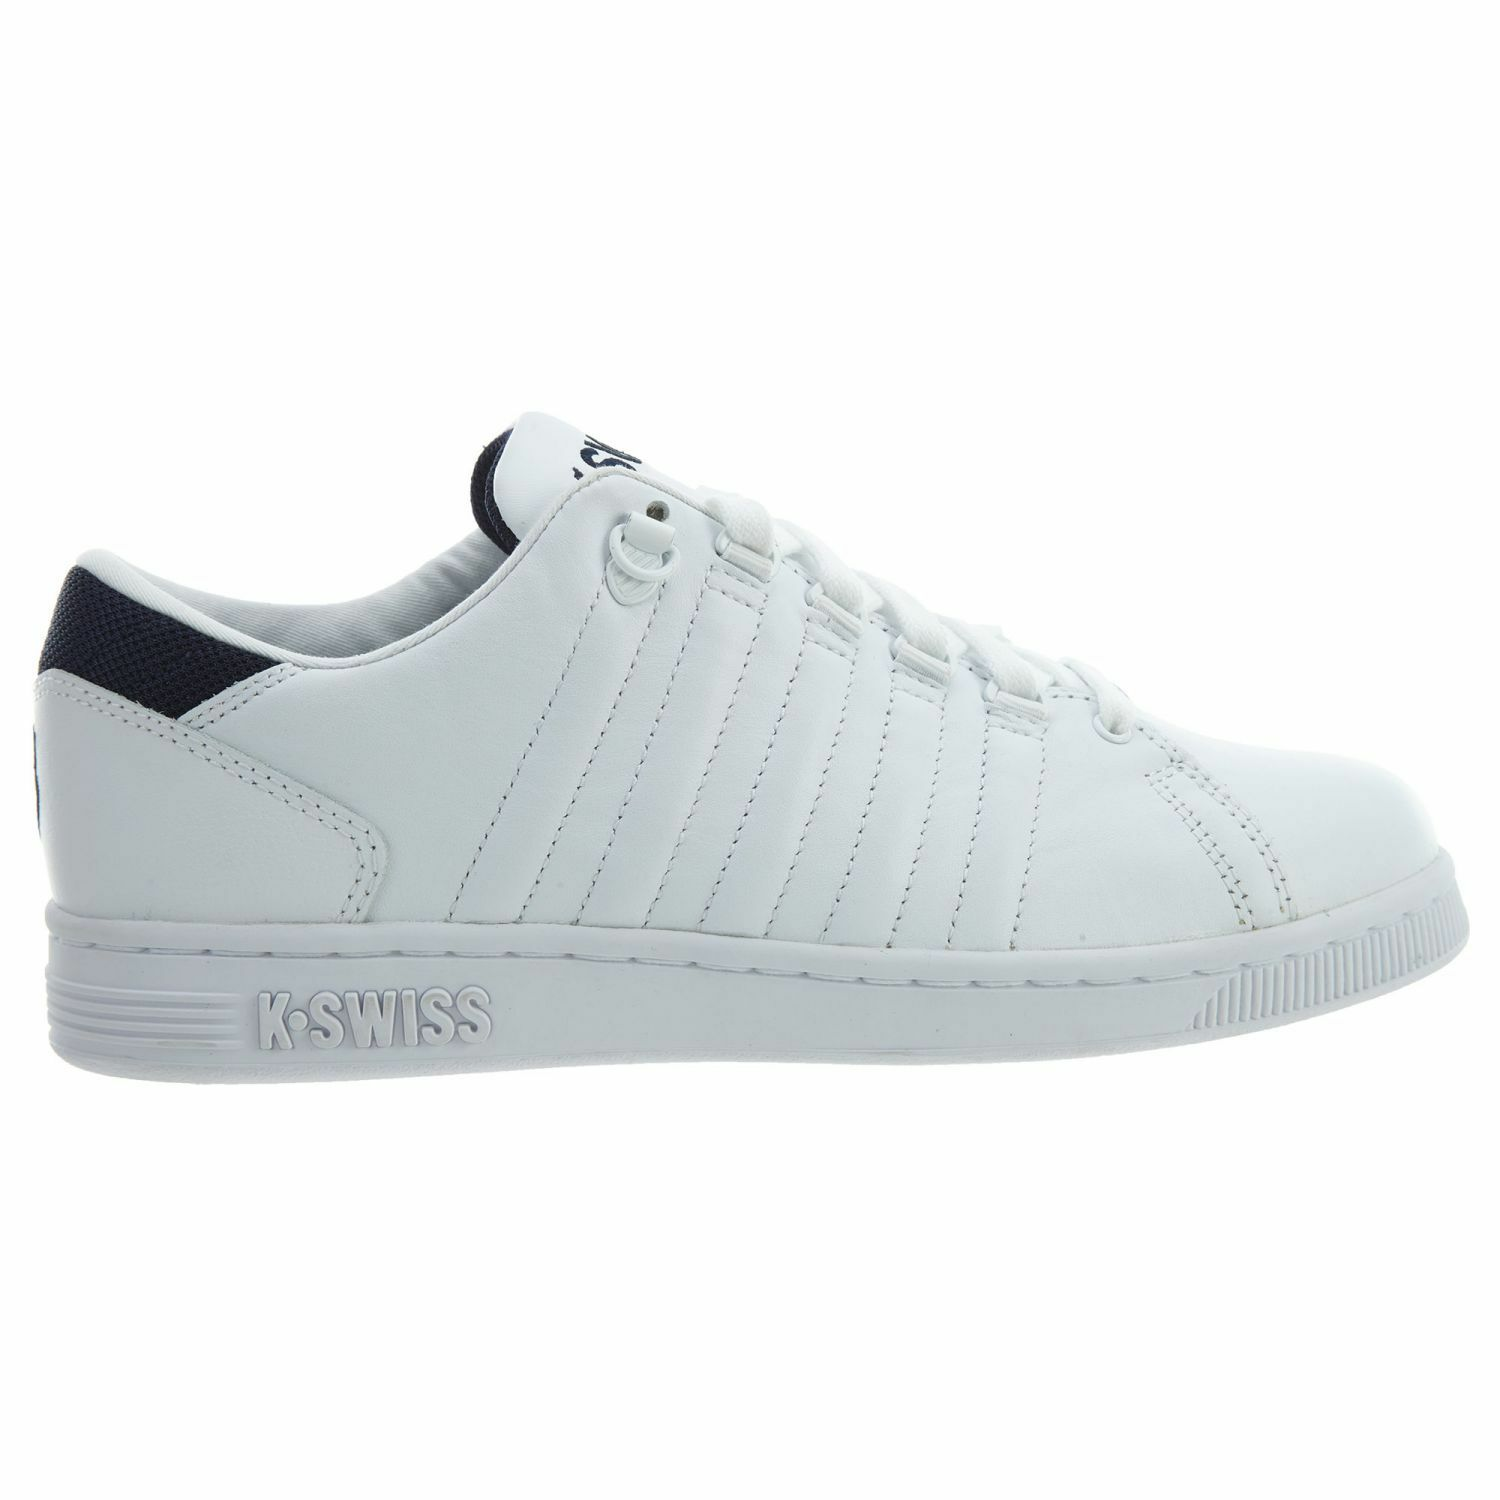 K-Swiss Lozan III TT Mens 05398-109 White Navy Leather Athletic shoes Size 8